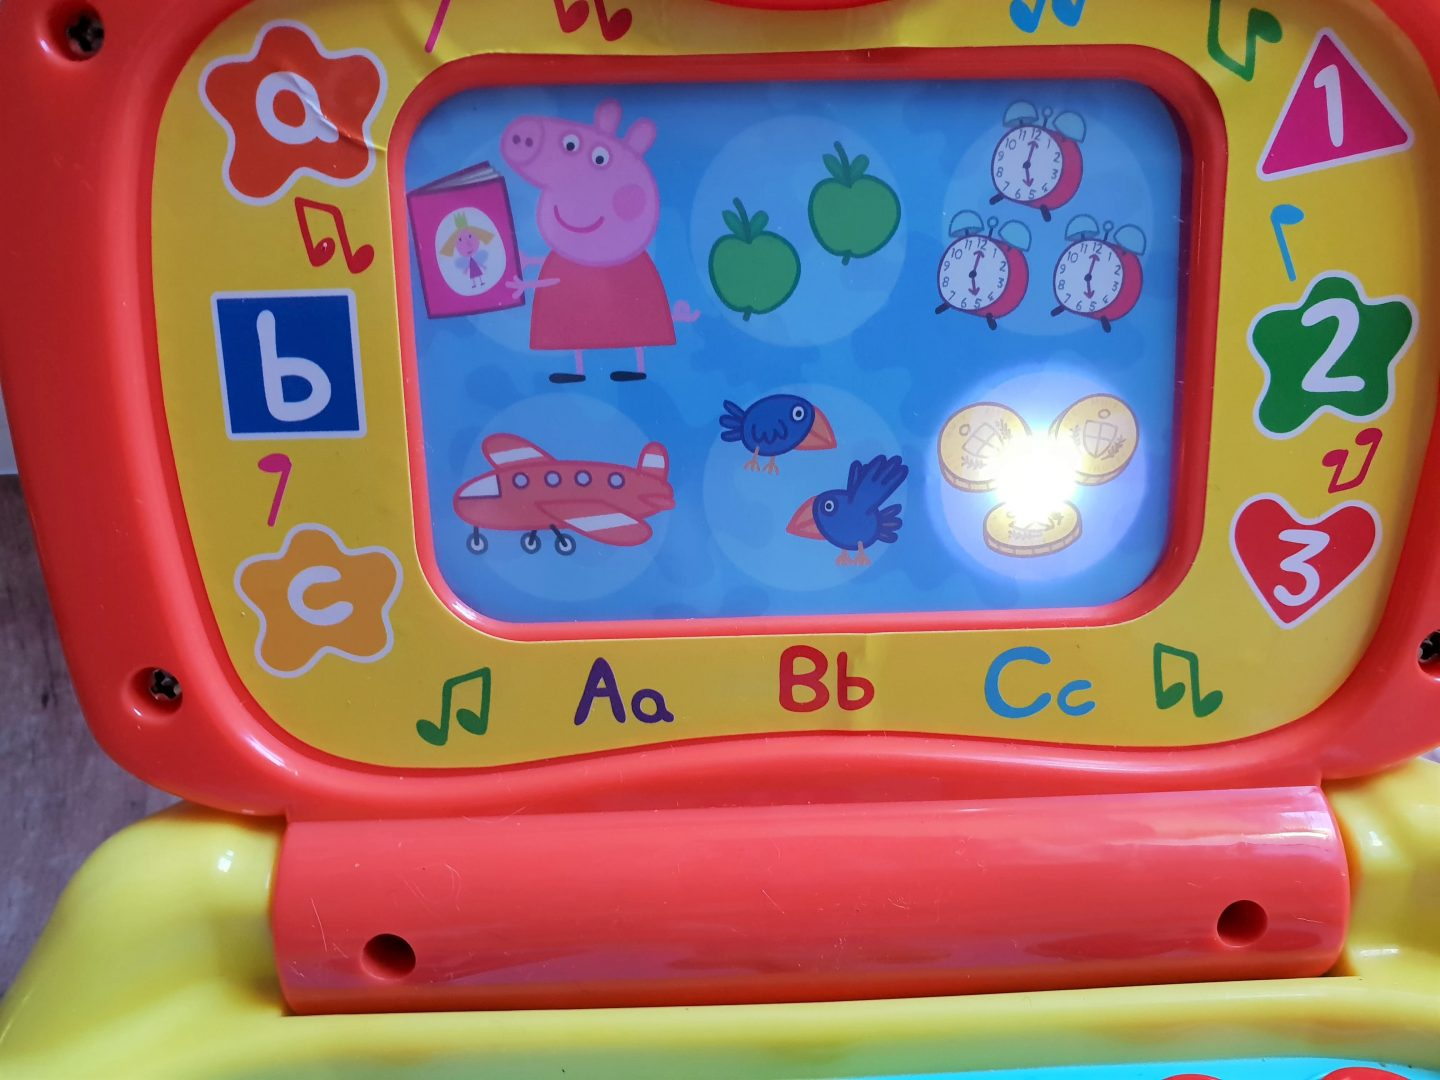 Peppa Pig laptop backlit